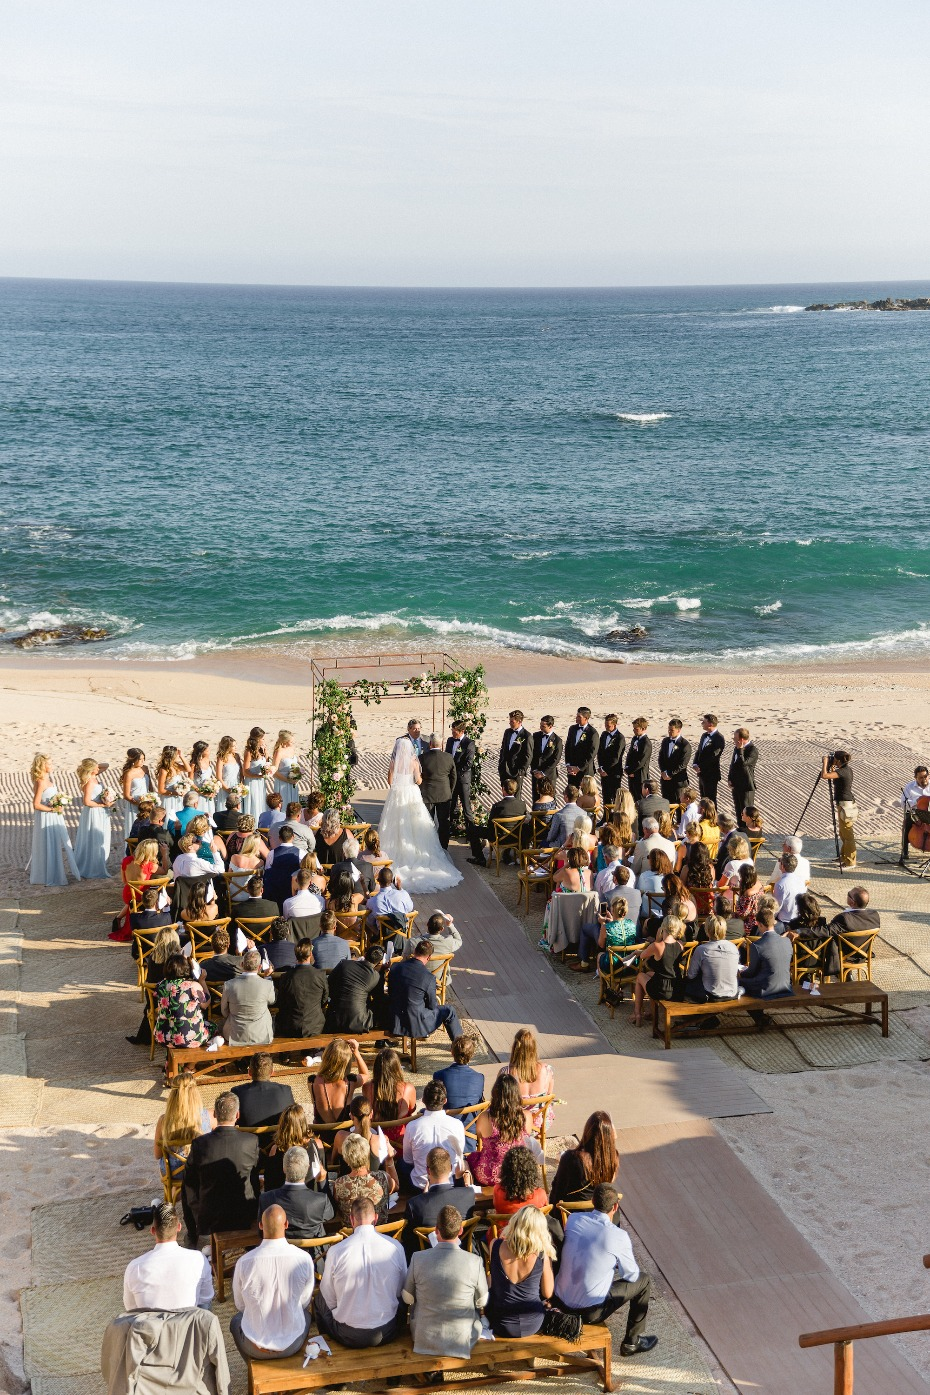 Gorgeous ocean front wedding in Mexico